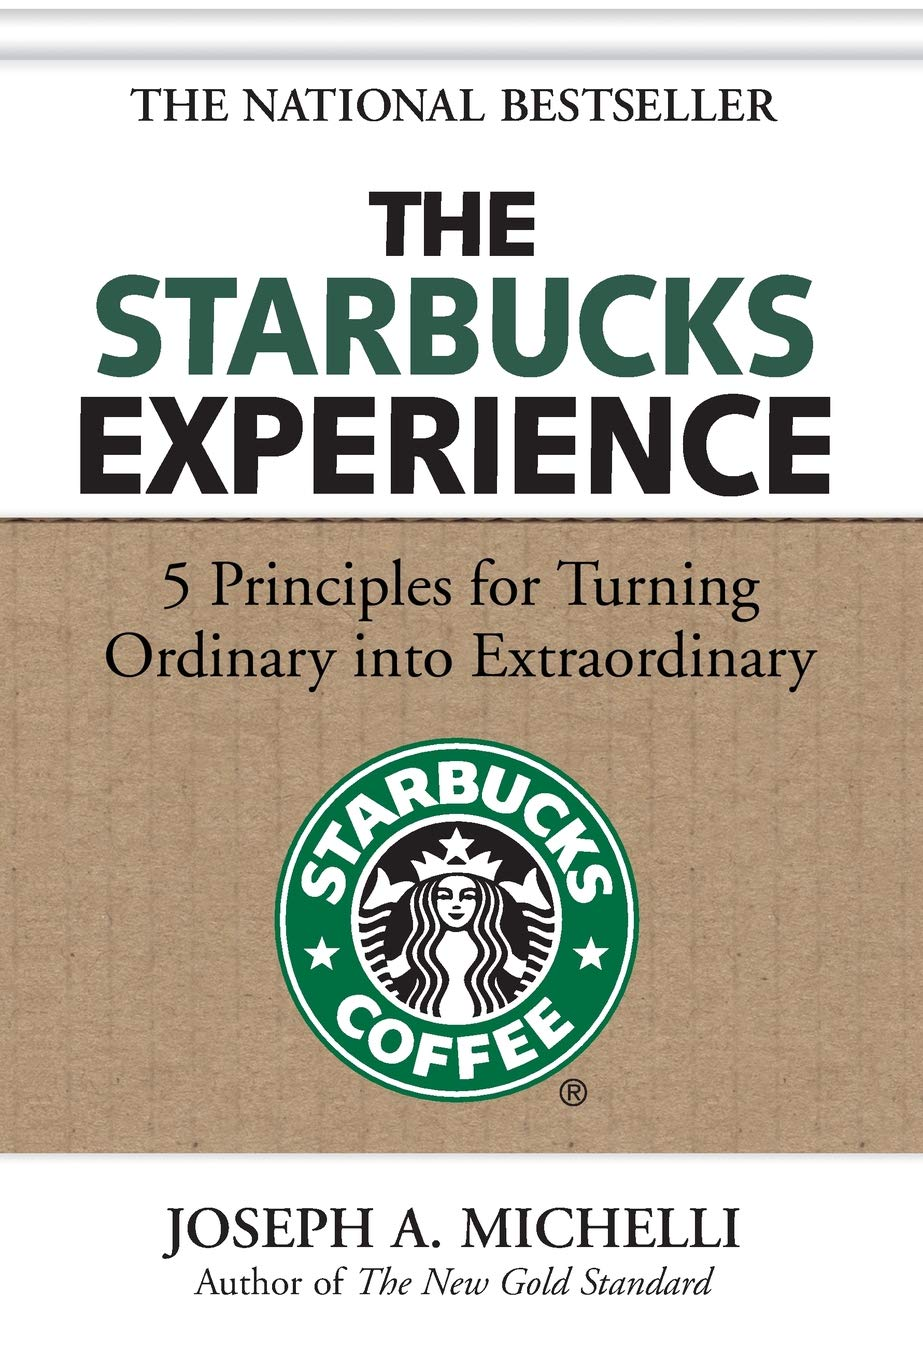 The Starbucks Experience 5 Principles For Turning Ordinary